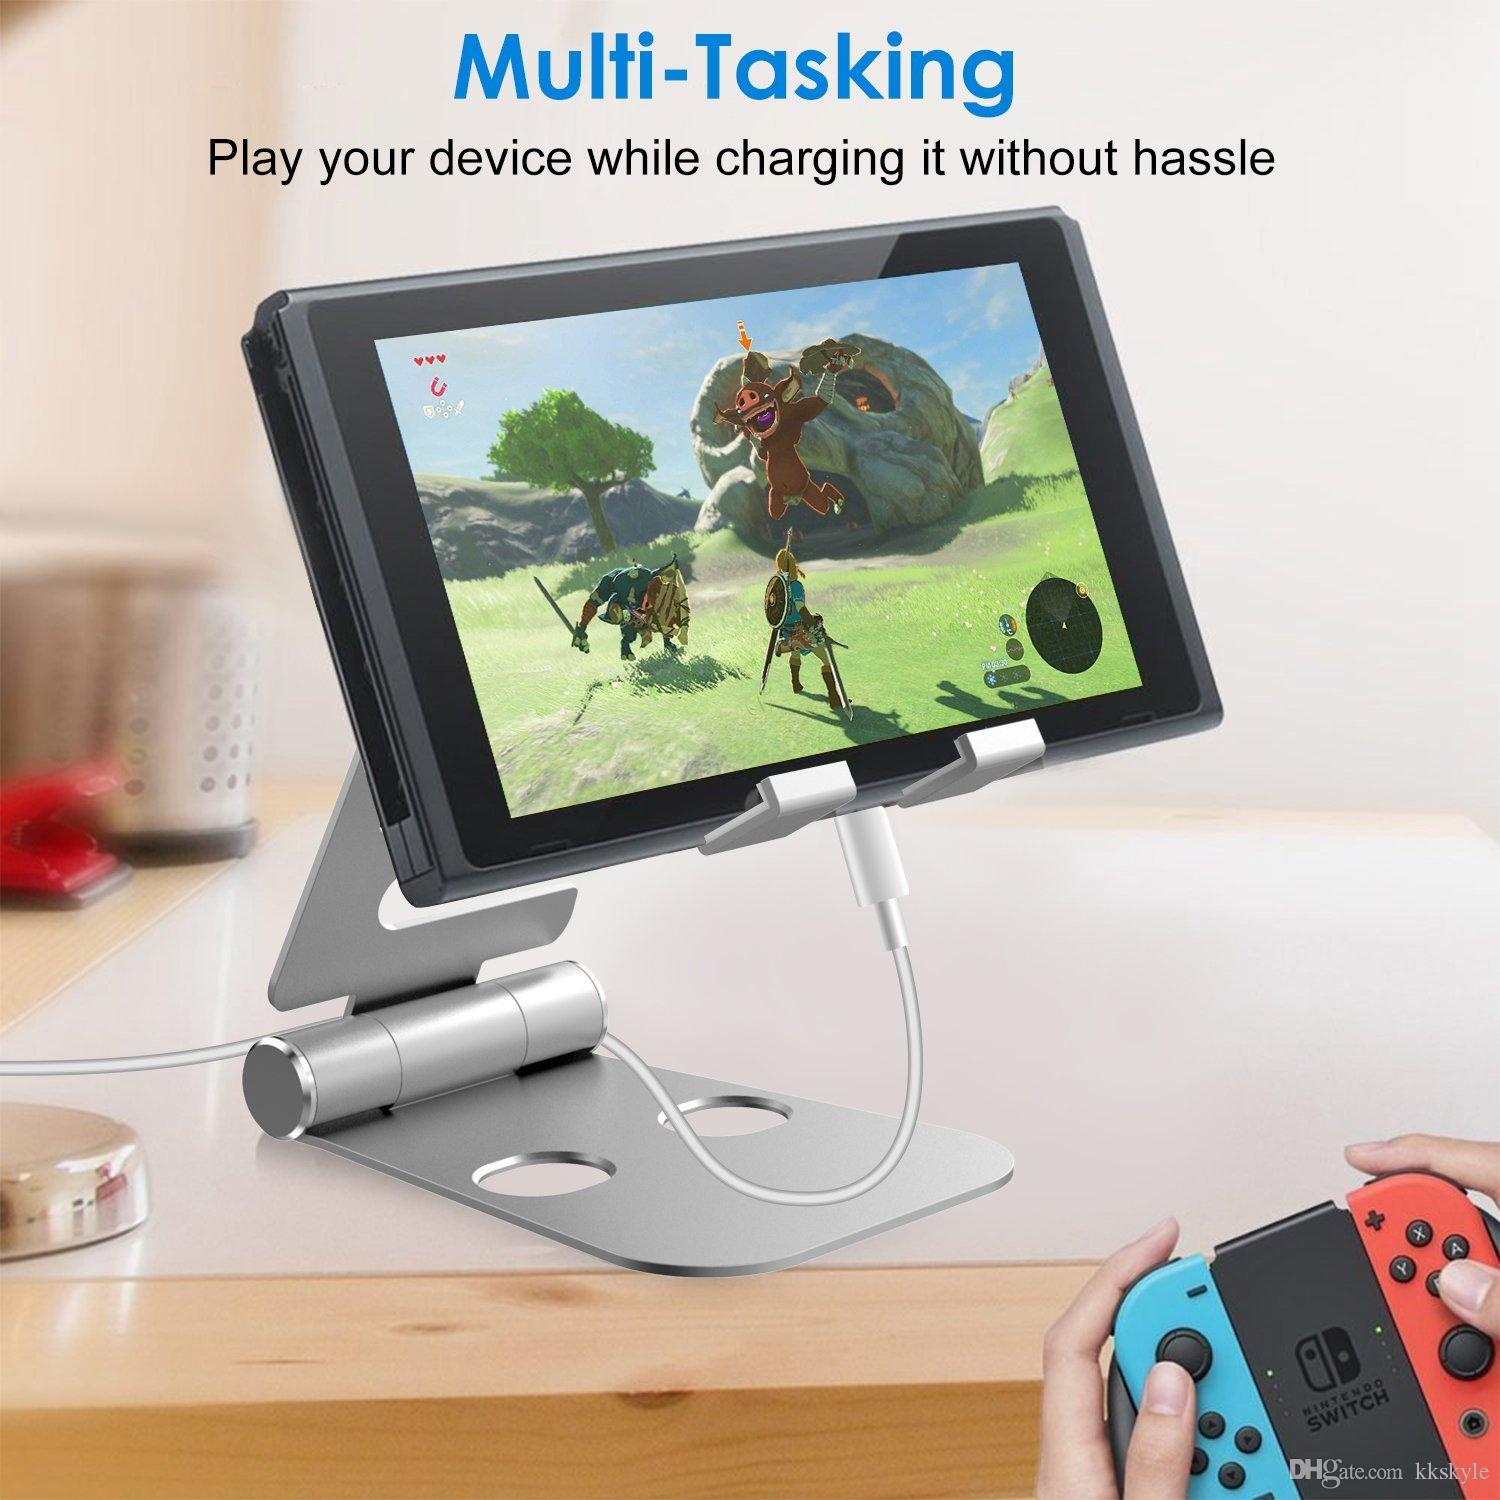 2-in-1 Alluminum Stand for Smartphones and Apple Watch, Foldable Holder, Multi-Angle Desktop Cradle, Adjustable Charging Dock